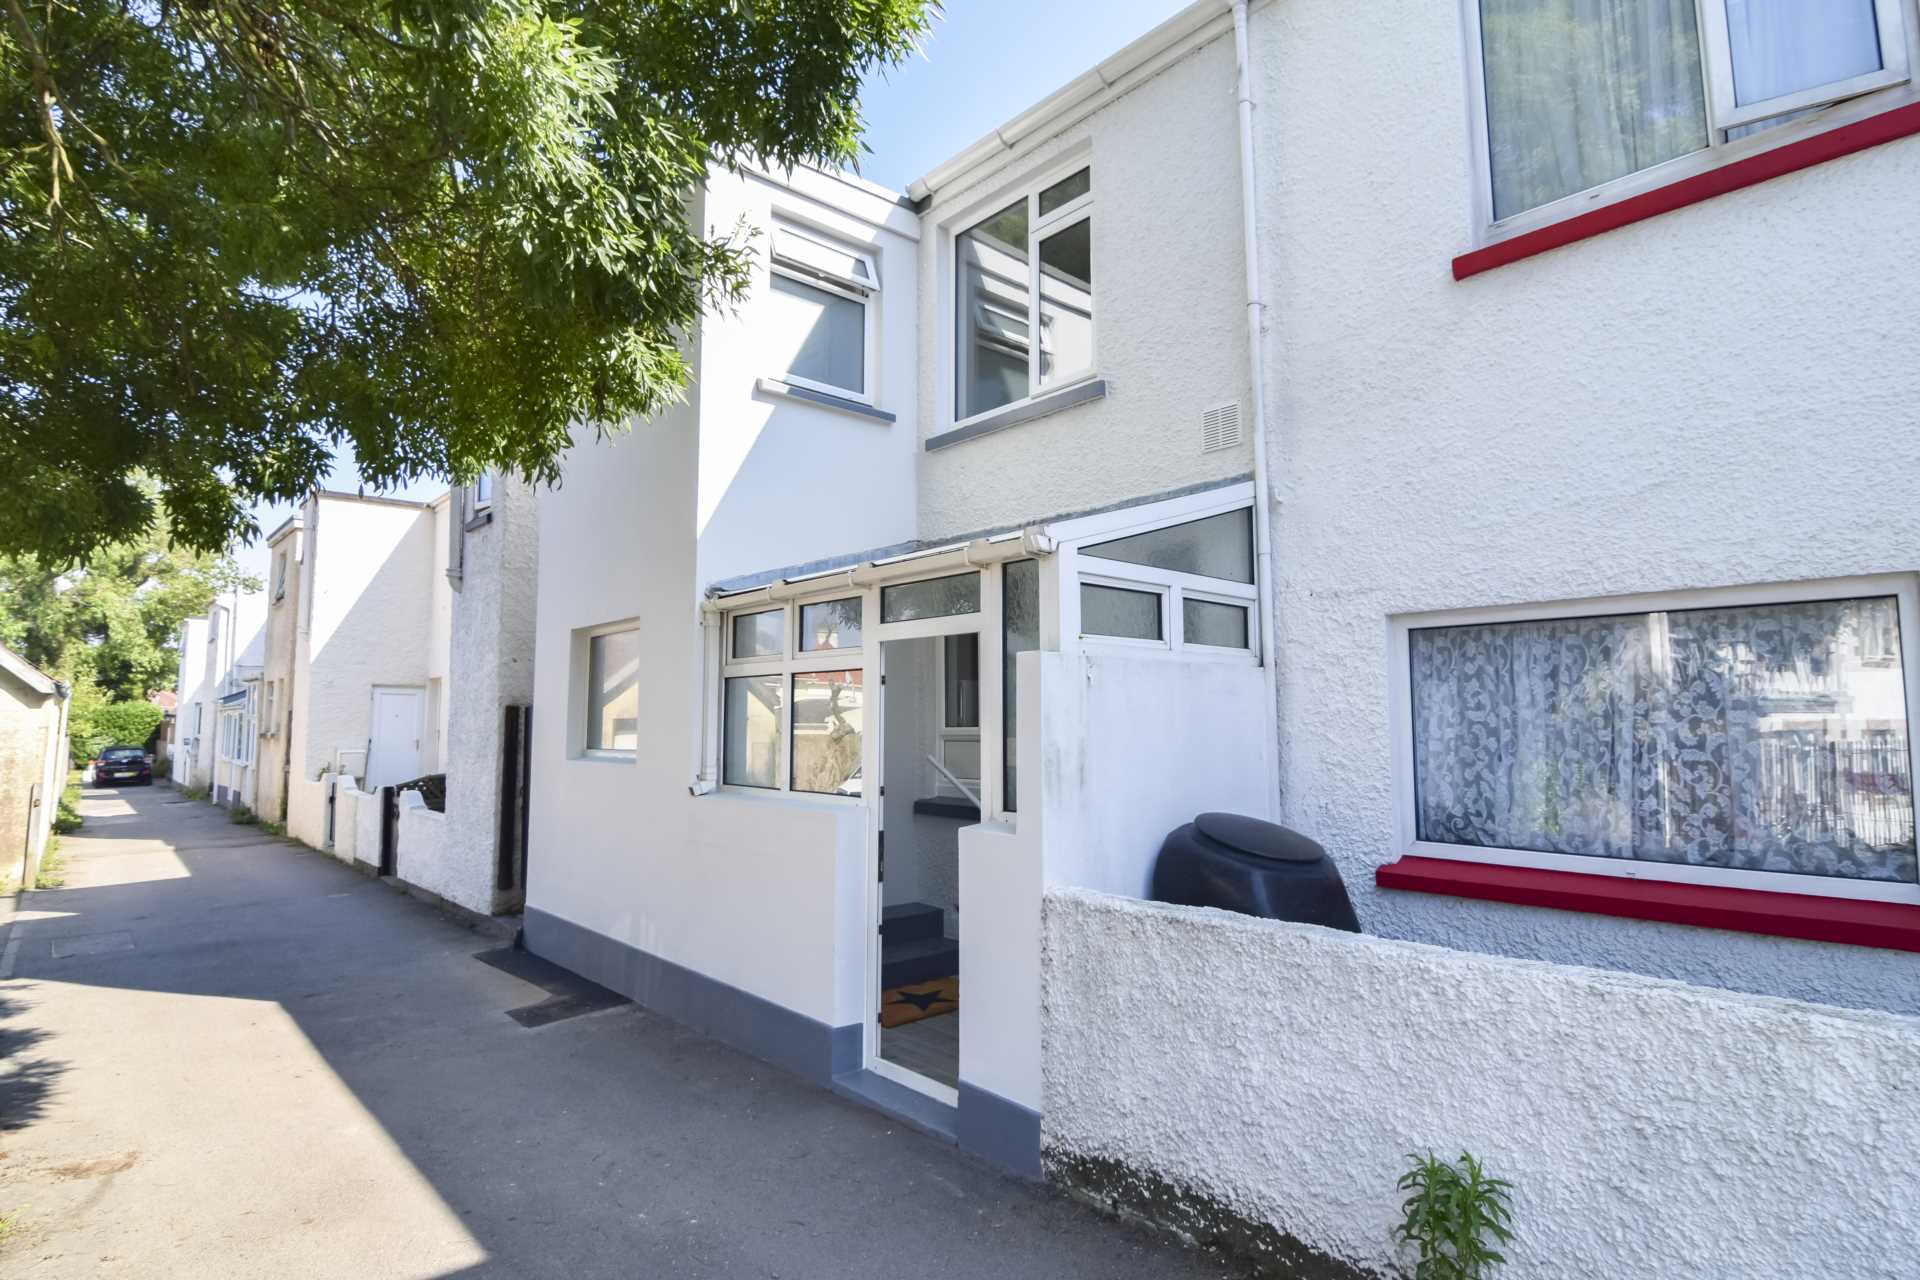 13, Beach Road, St Clement, Image 24